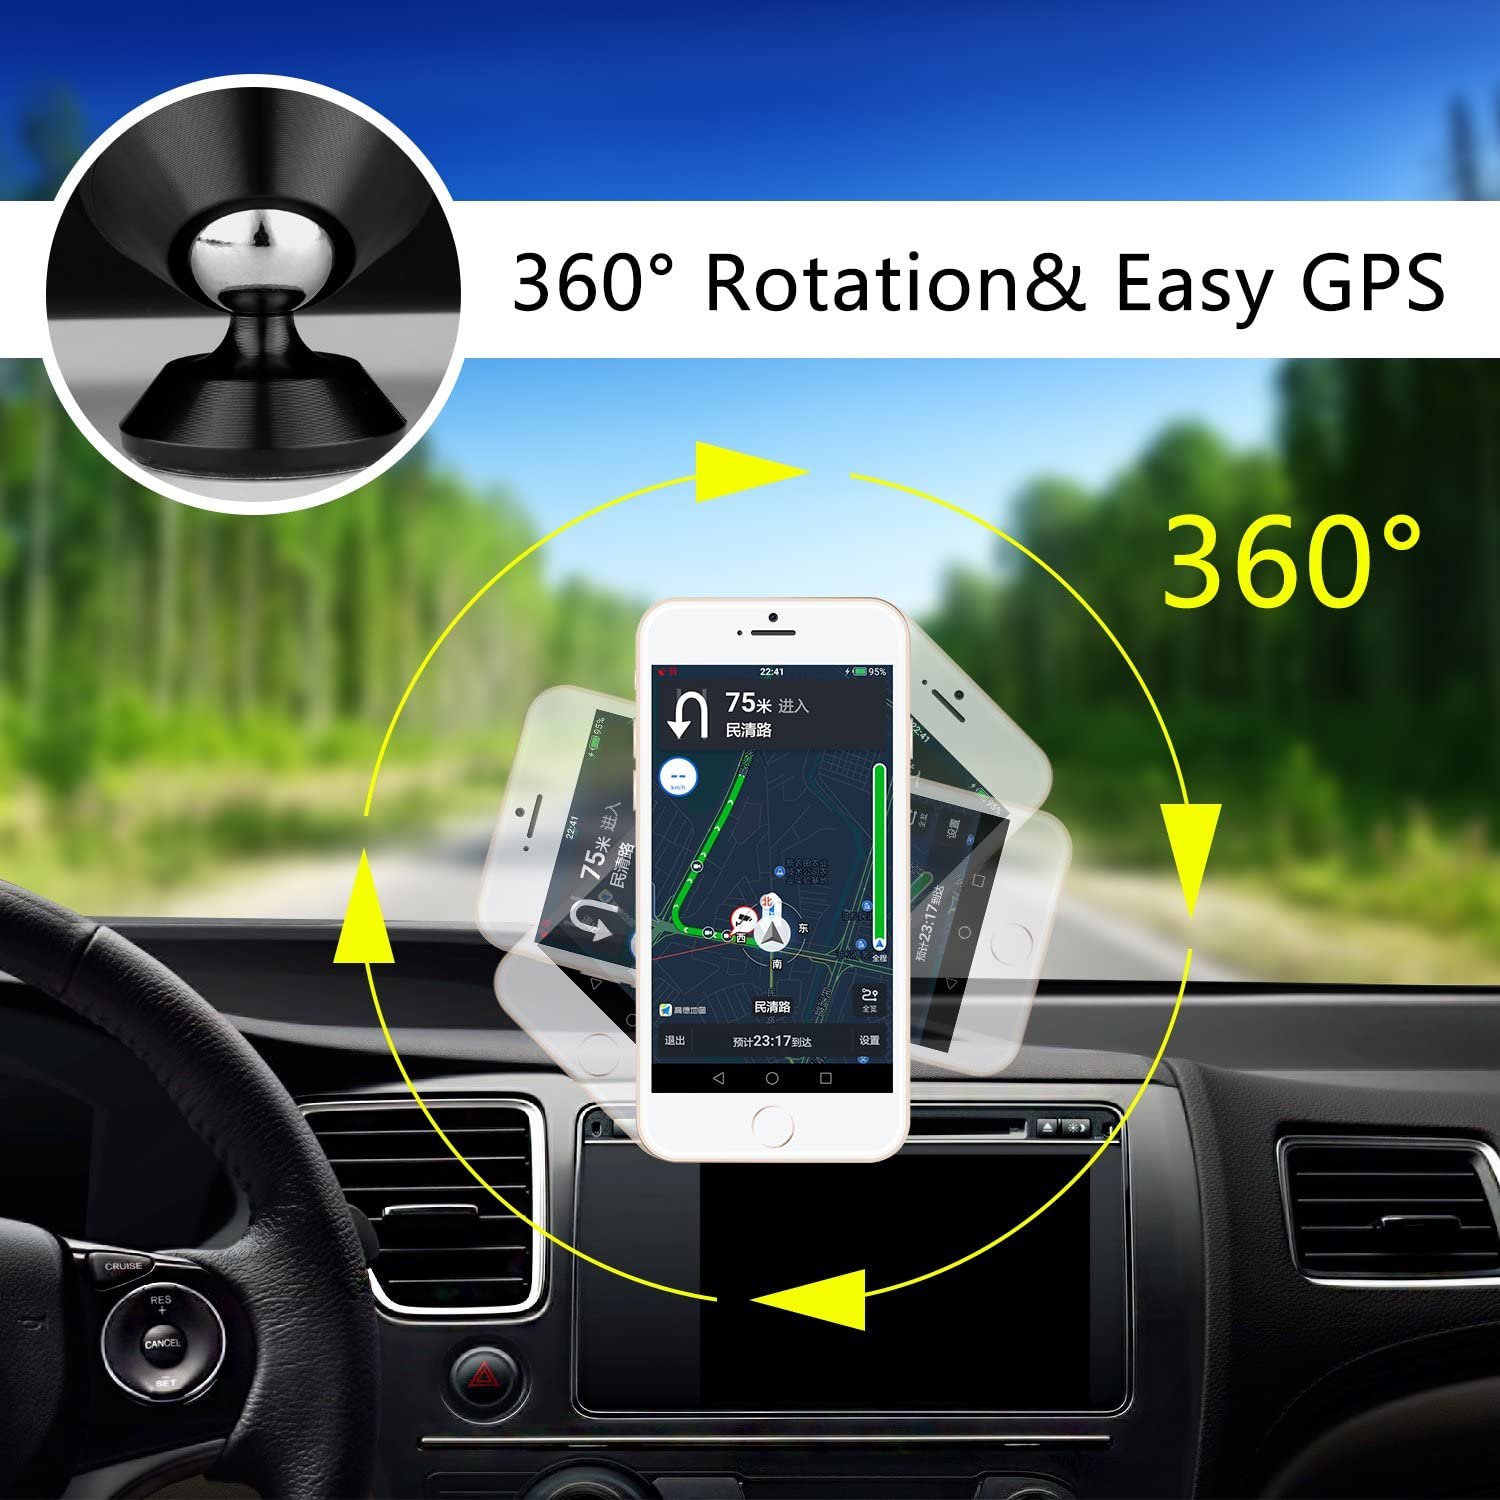 HETBEES Universal Dashboard 360/° Rotation iPhone Car Mount Car Phone Mount Magnetic Cell Phone Holder for All iPhone 7 7s 6s 6 5 Plus Samsung Smartphone GPS